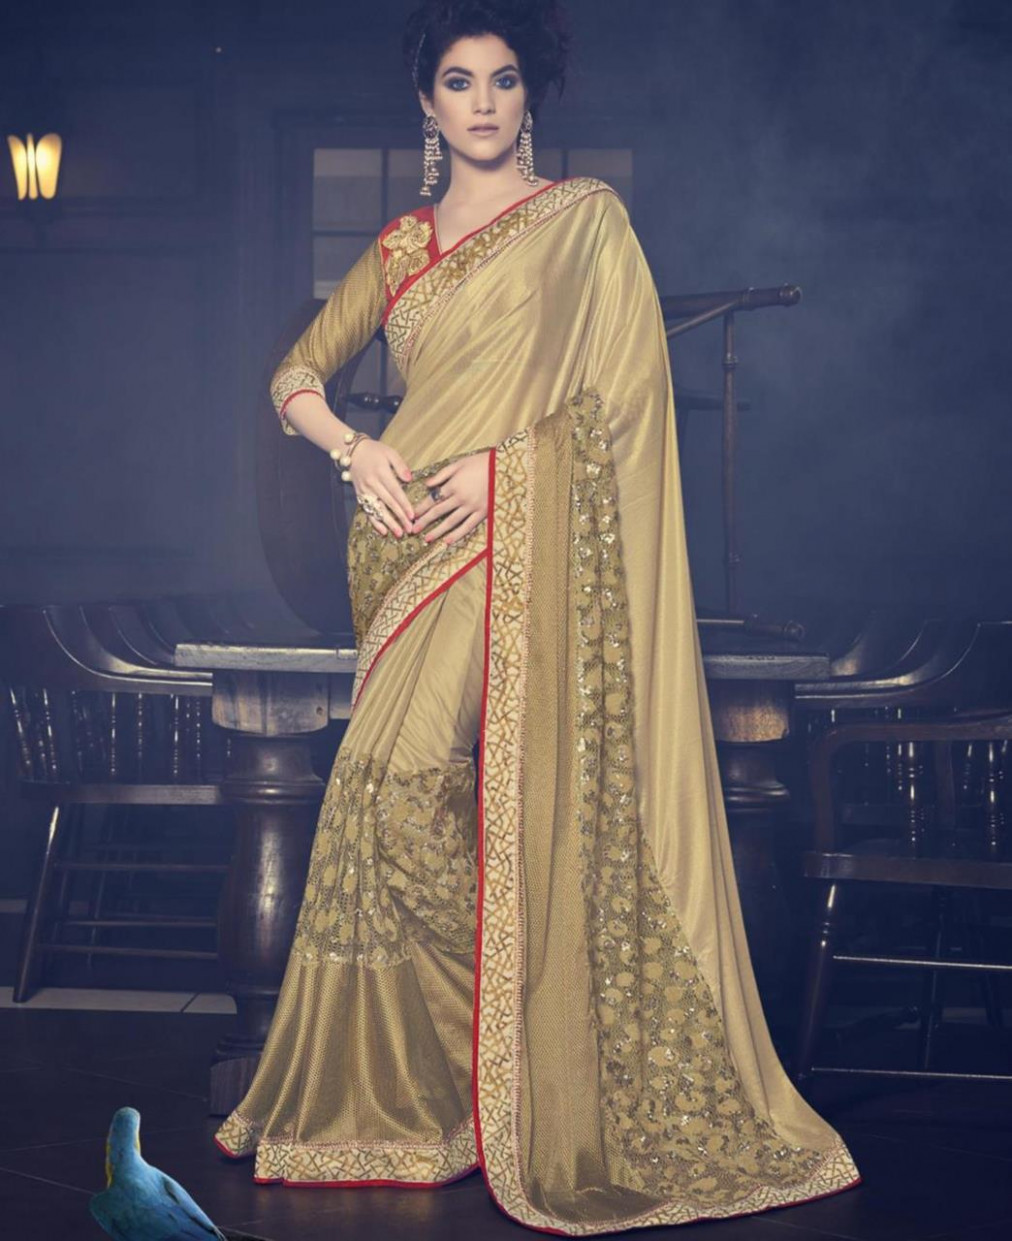 Buy Nice Gold Wedding Saree [117926] at 111.42 د.إ.‏